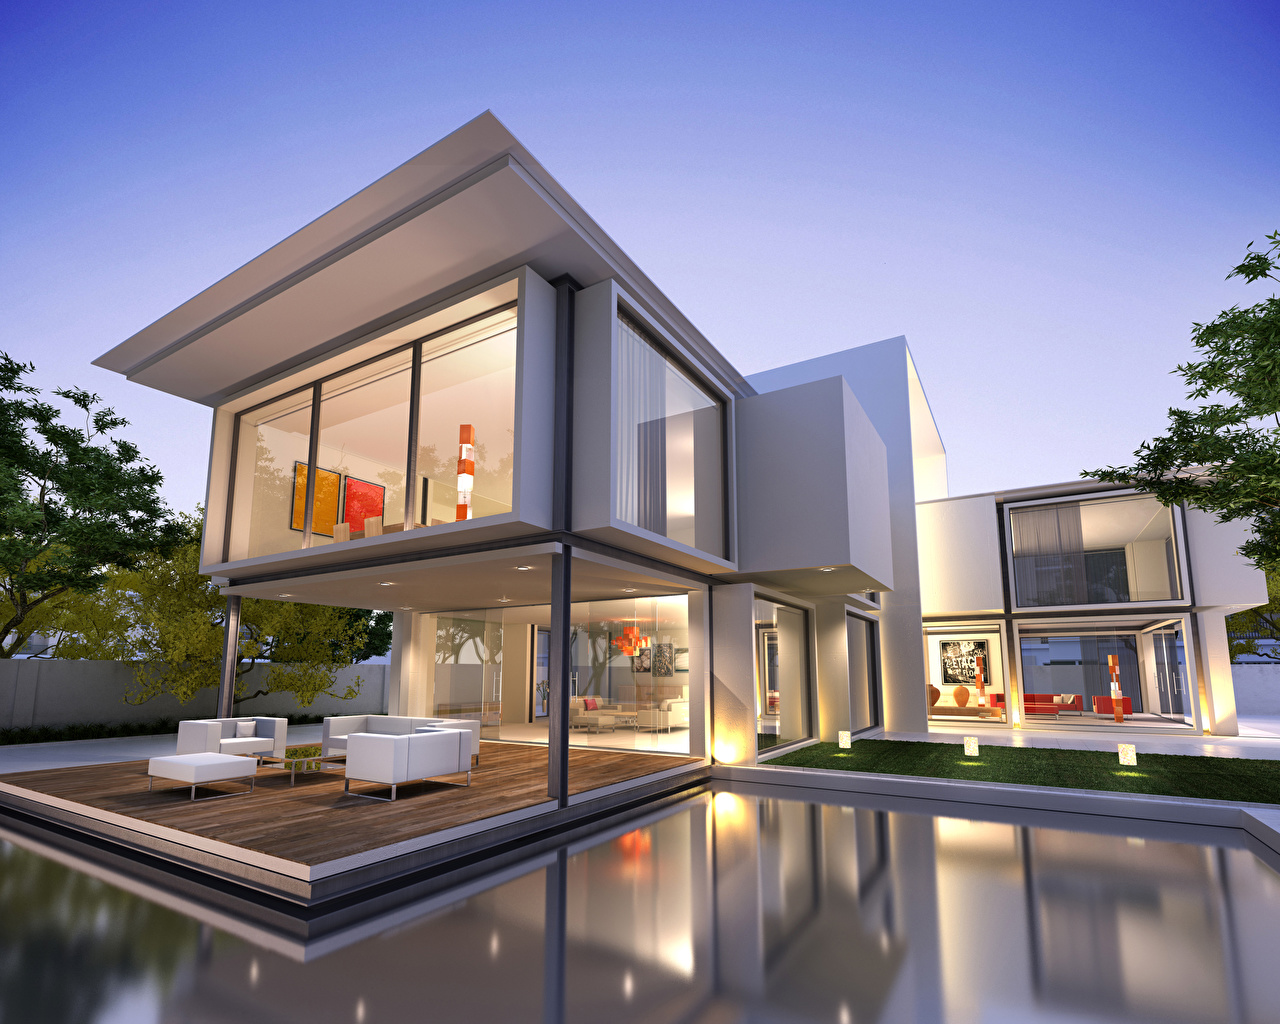 Photos Pools 3d Graphics High Tech Style Mansion Houses Design